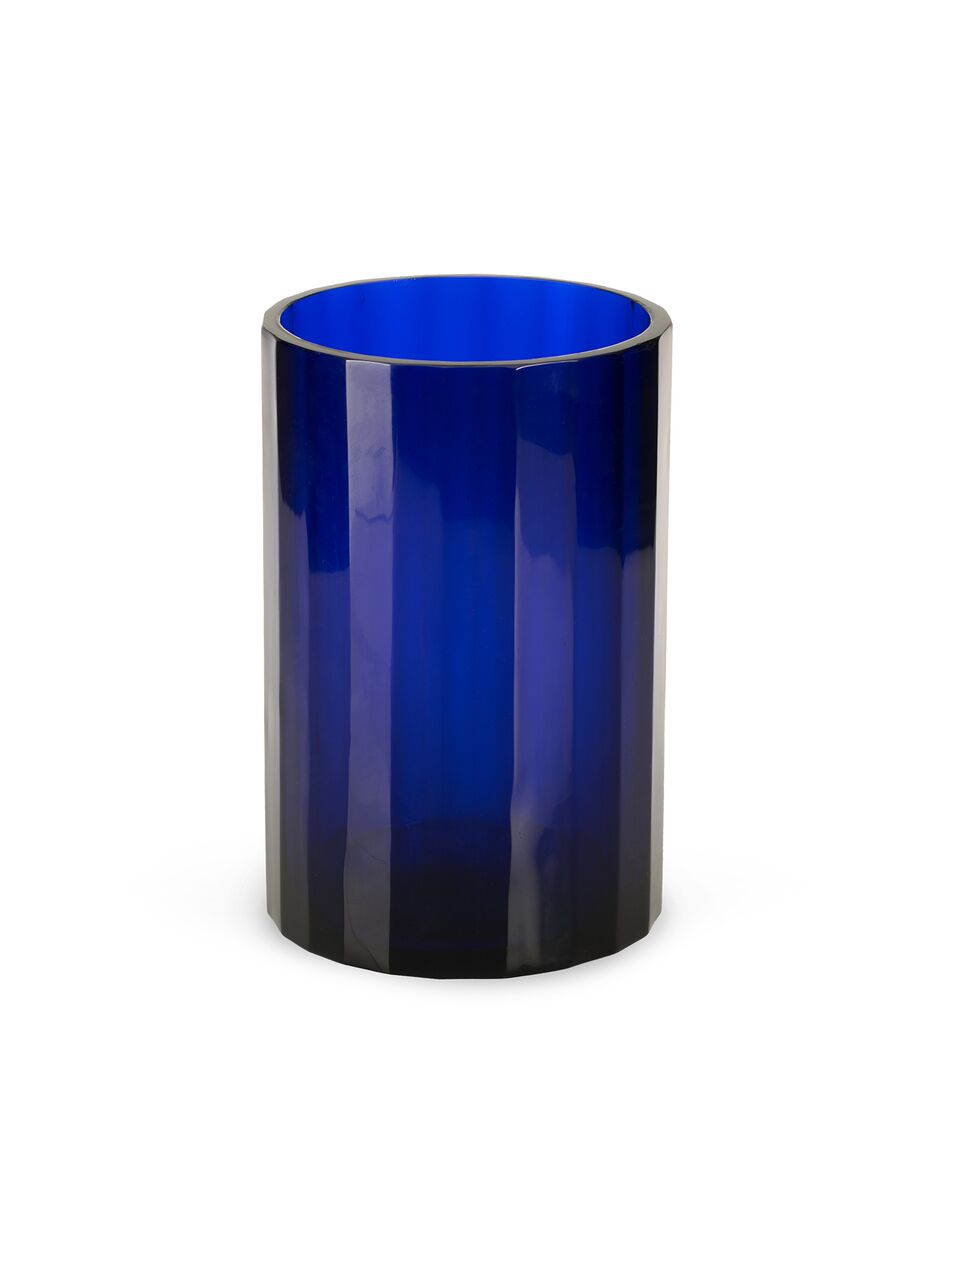 Sophie Conran - Elgar Gl Vase | Sophie Conran Shop on home goods home decor, home goods mooresville nc, home goods cookware, home goods gifts, home goods desks, home goods bowls, home goods accessories, home goods flowers, home goods trays, home goods tablecloths, home goods chairs, home goods chests, home goods toss pillows, home goods storage, home window panels nicole miller, home goods sofas, home goods vanity stools,